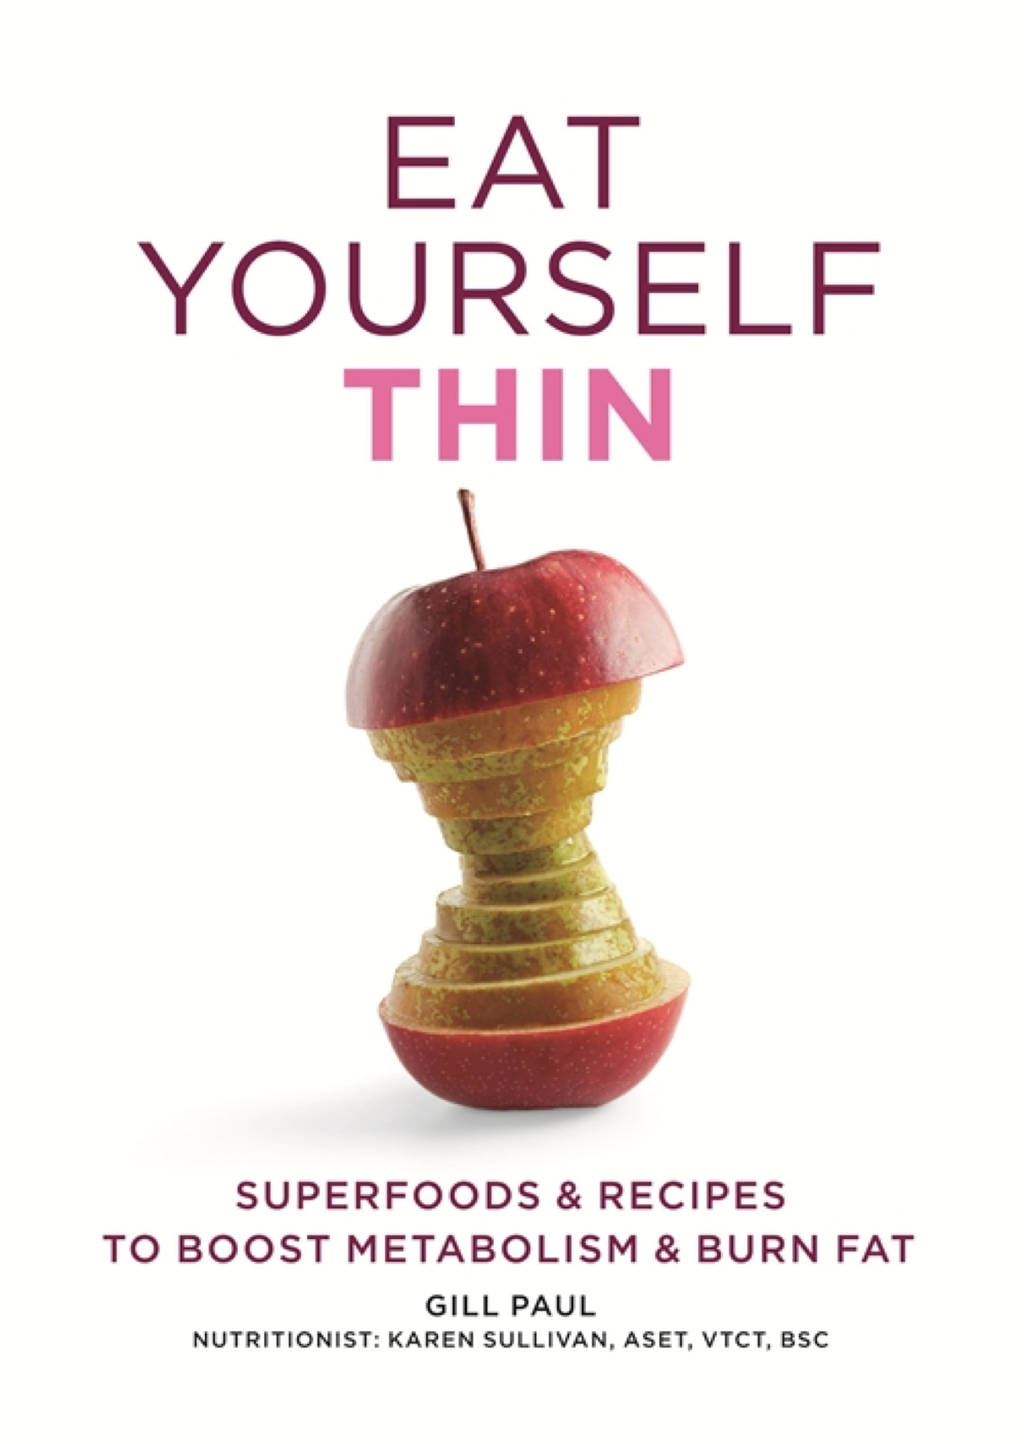 Eat Yourself Thin Superfoods & Recipes to Boost Metabolism & Burn Fat